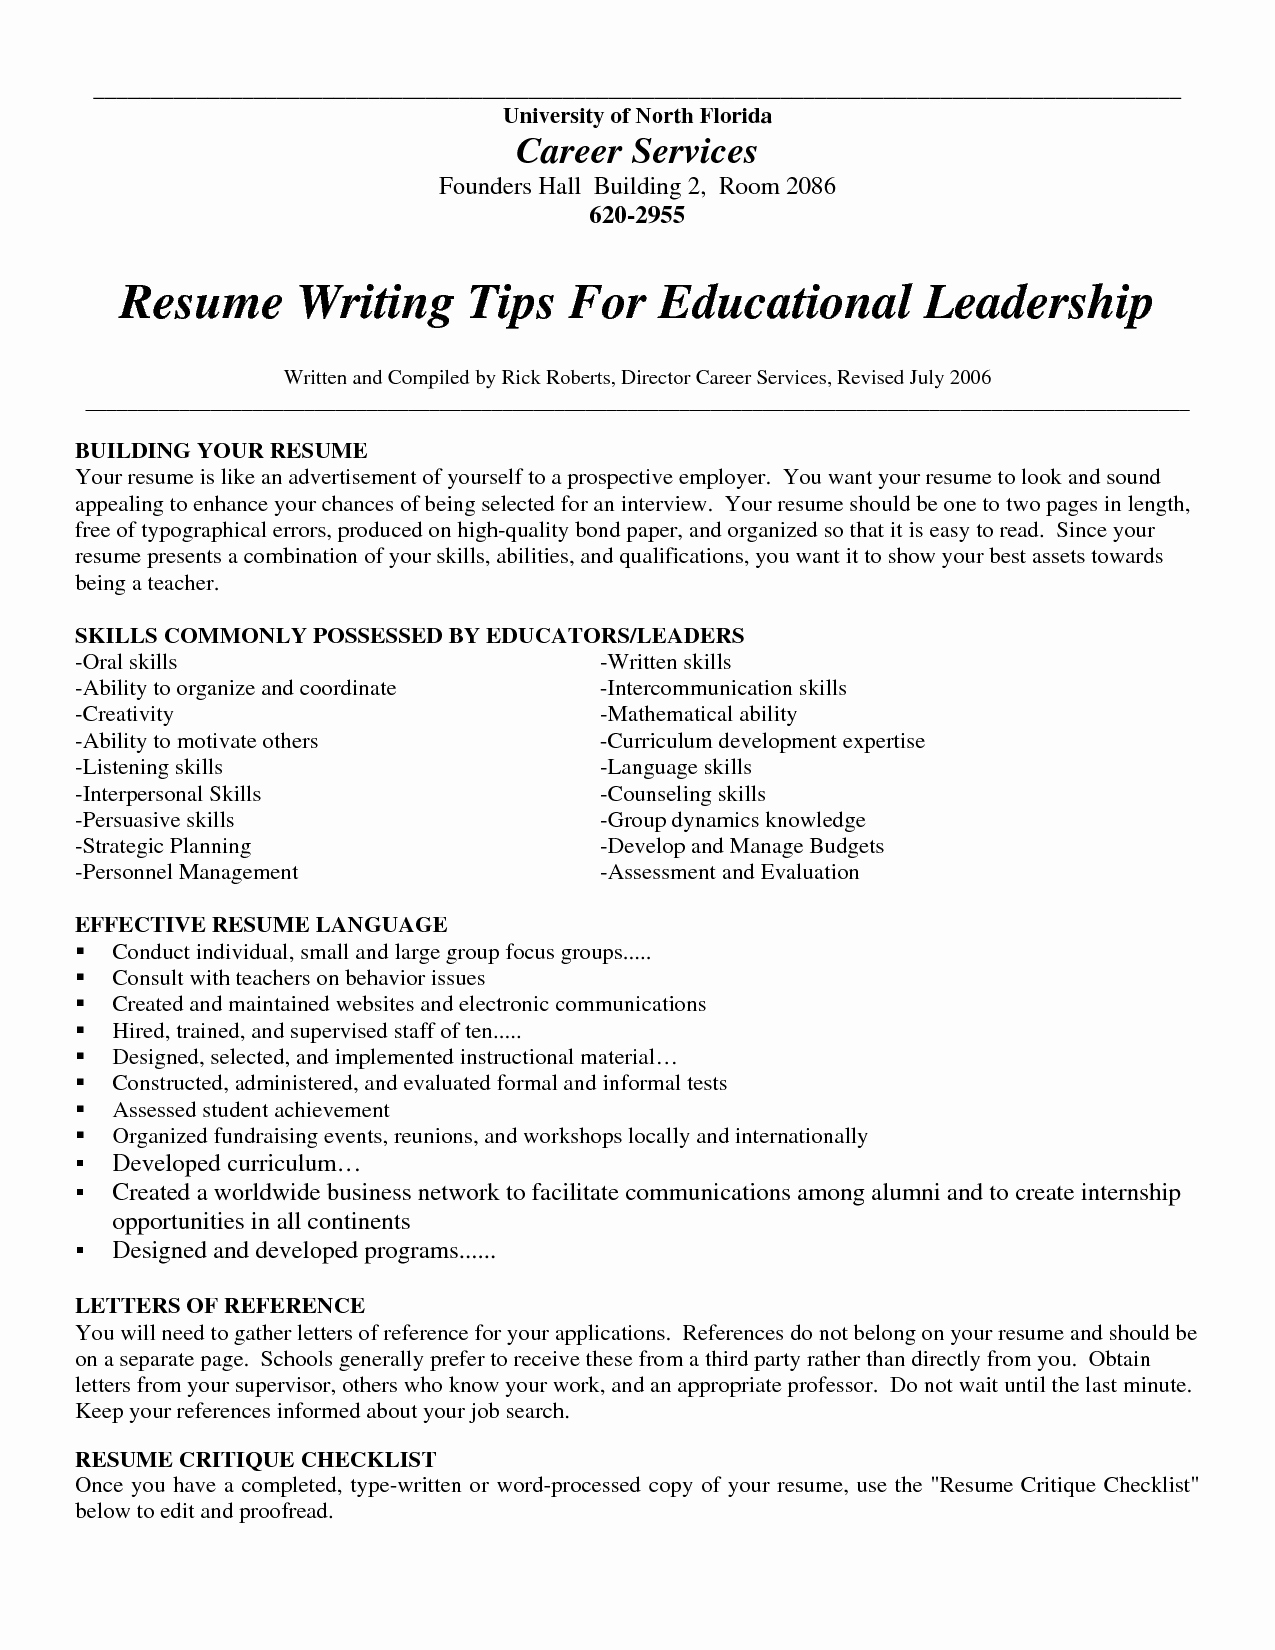 002 Essay Professor Resume Format For Assistant Job Awesome Pro Life